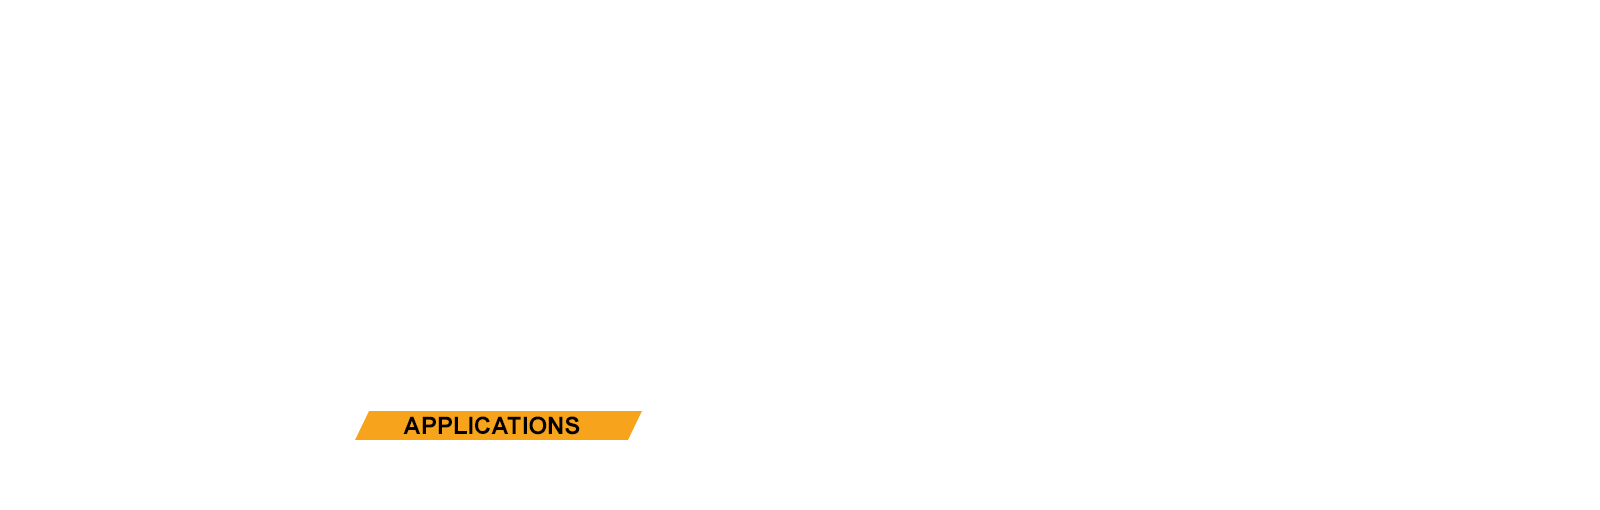 POLYVALENCE D'OUTILLAGE